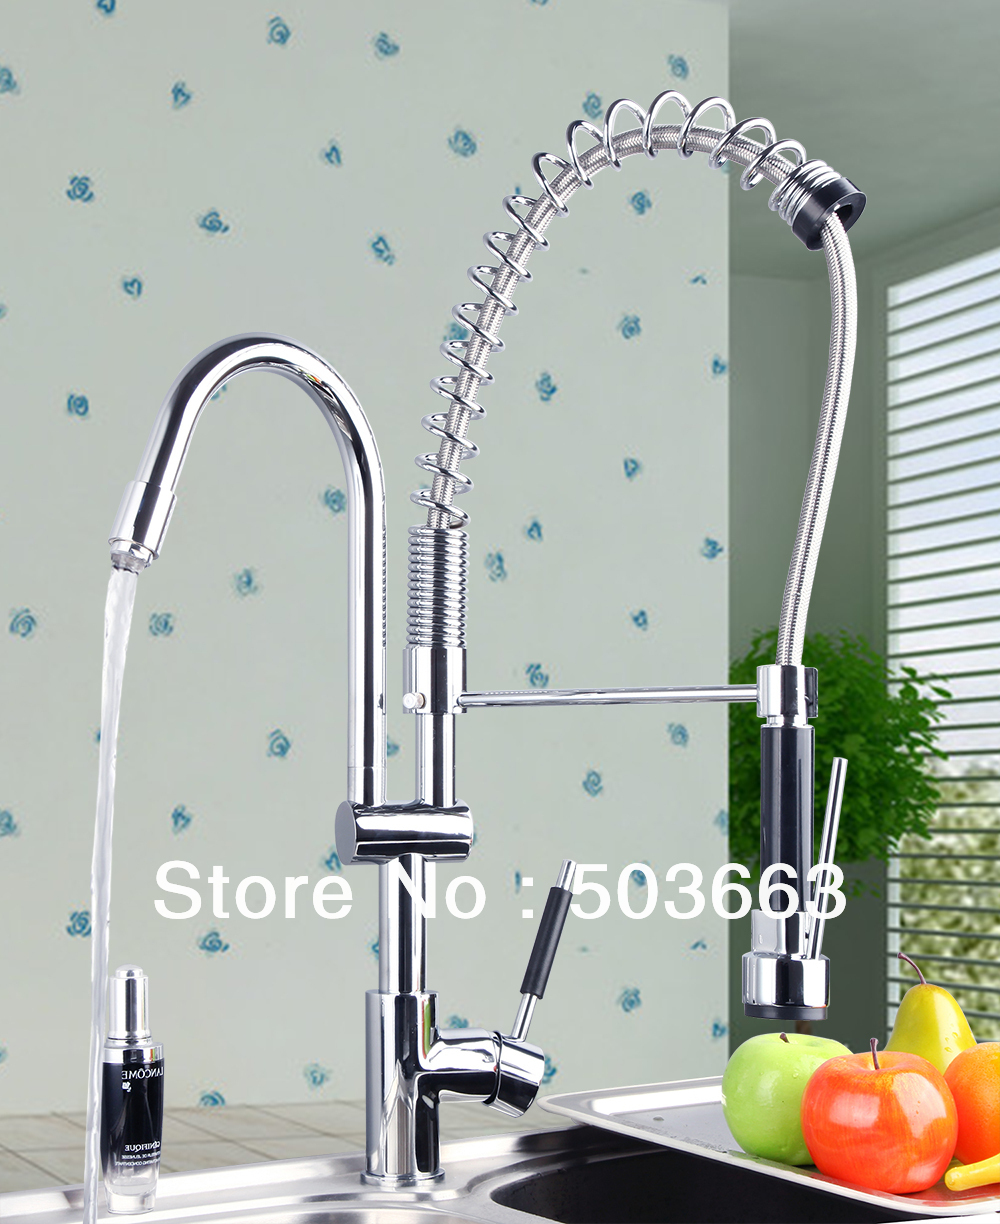 Double Handles Free Chrome Brass Water Kitchen Faucet Swivel Spout Pull Out Vessel Sink Single Handle Mixer Tap MF-268 free shiping chrome brass pull out sprayer brass kitchen sink faucet swivel spout mixer tap kf880 c